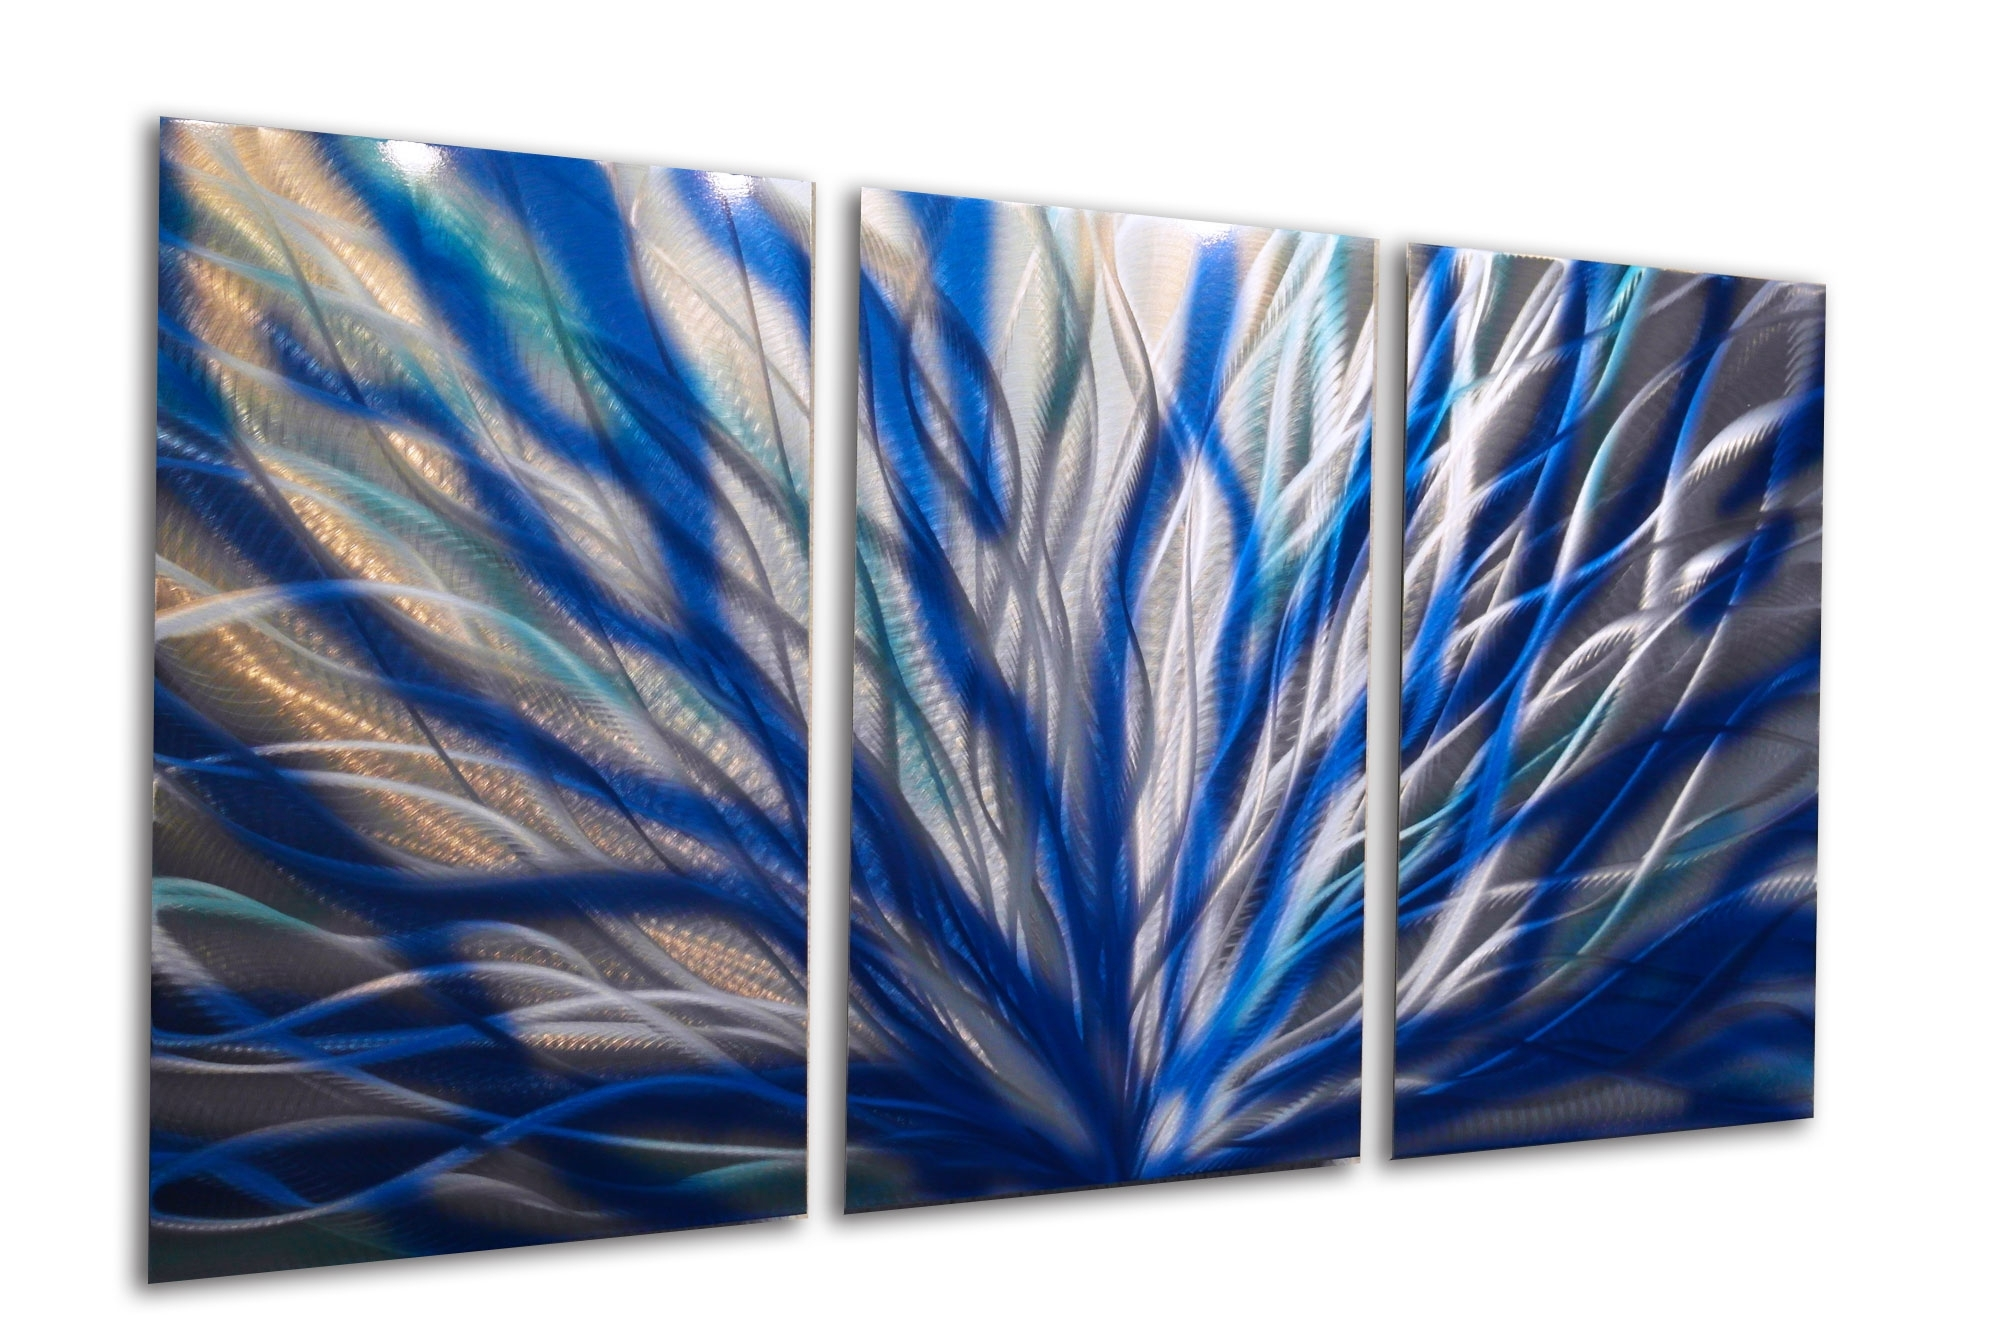 Radiance Blue 47 V2 – Metal Wall Art Abstract Sculpture Modern Regarding Best And Newest Abstract Leaf Metal Wall Art (View 10 of 20)